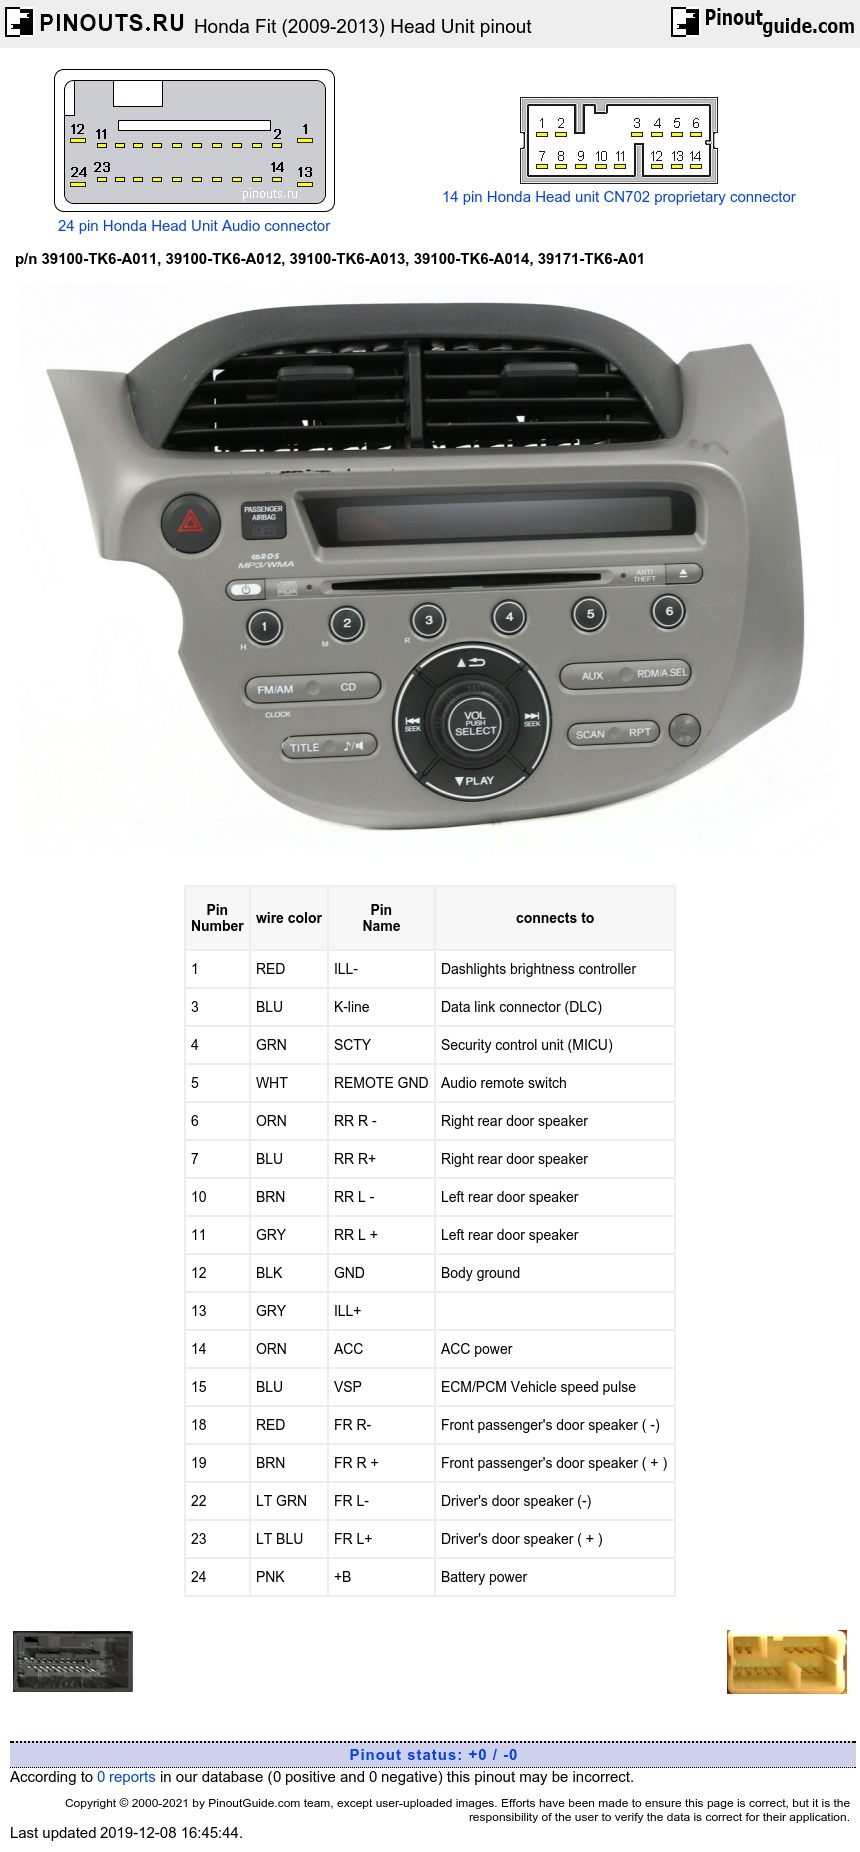 Honda Fit (2009-2013) Head Unit diagram